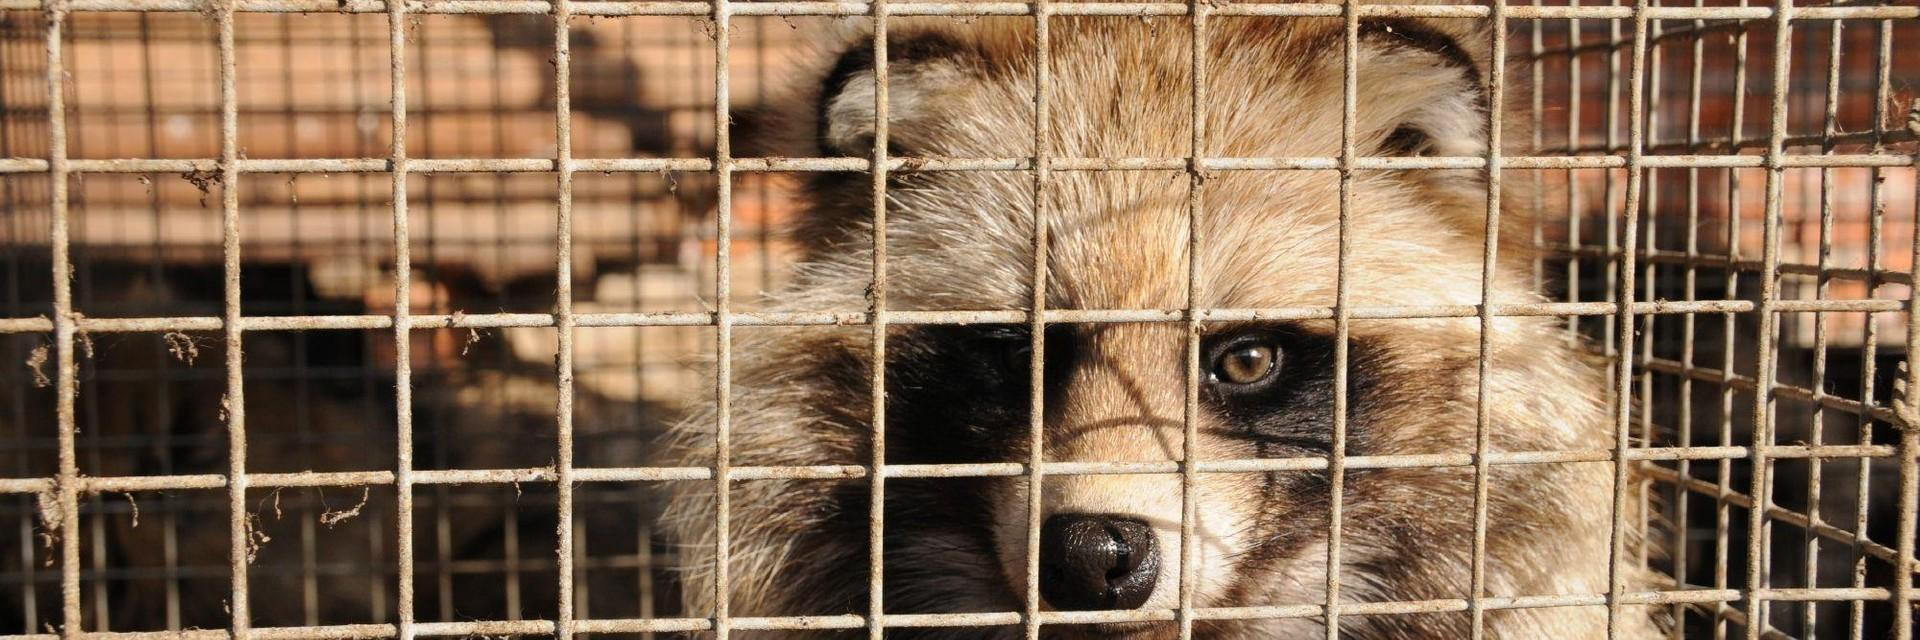 Cages minxes in a fur farr